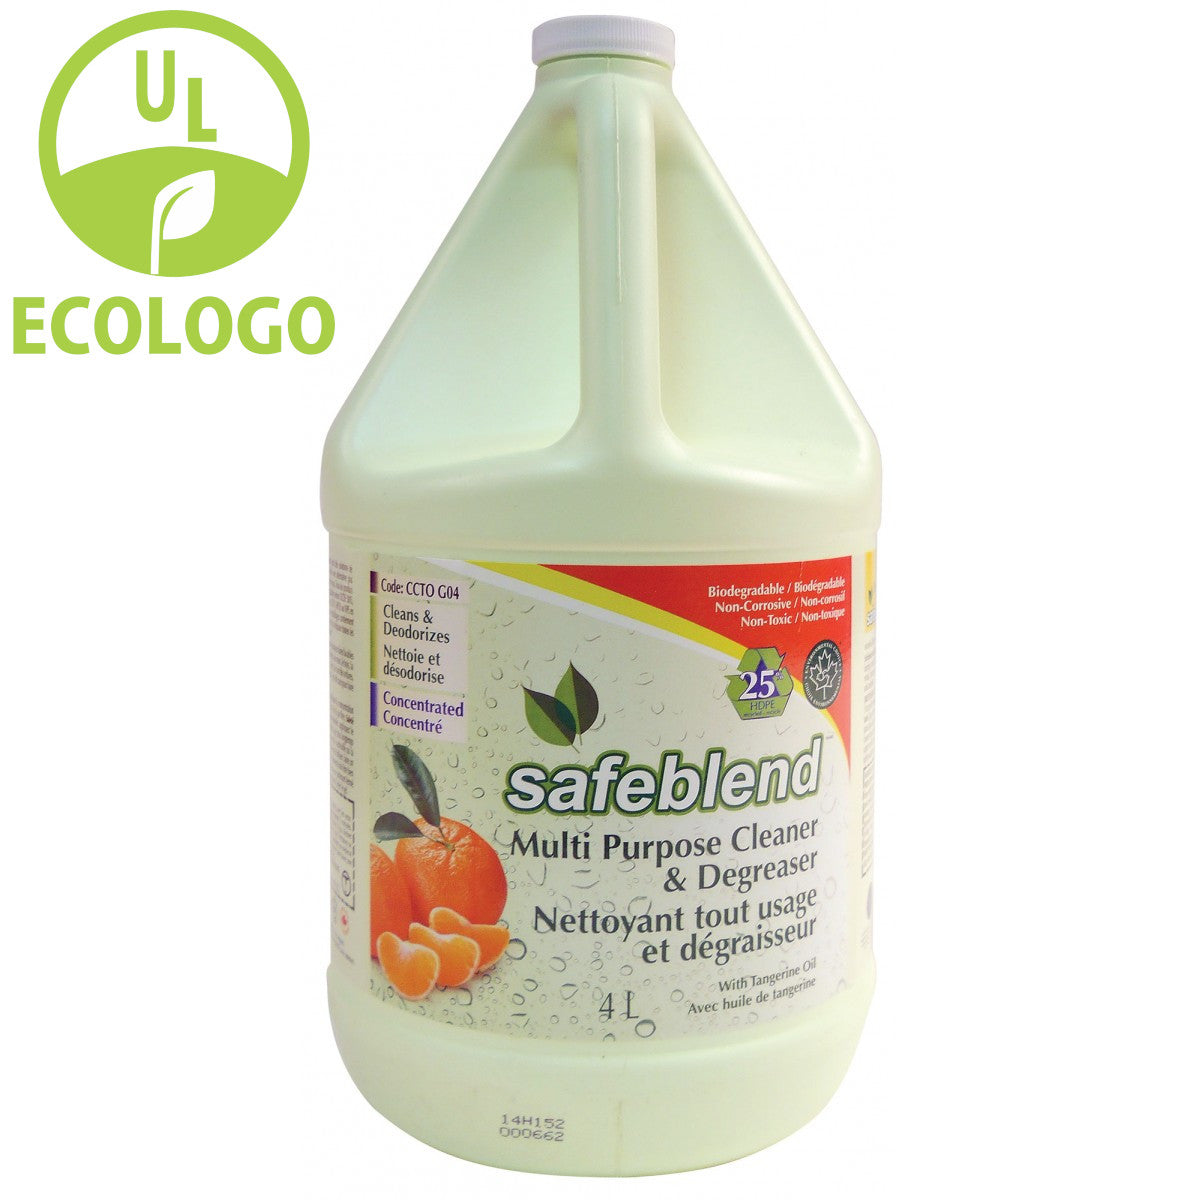 Safeblend EcoLogo Multi-Purpose Cleaner/Degreaser (Tangerine Scent) - 4L - Super Vacs